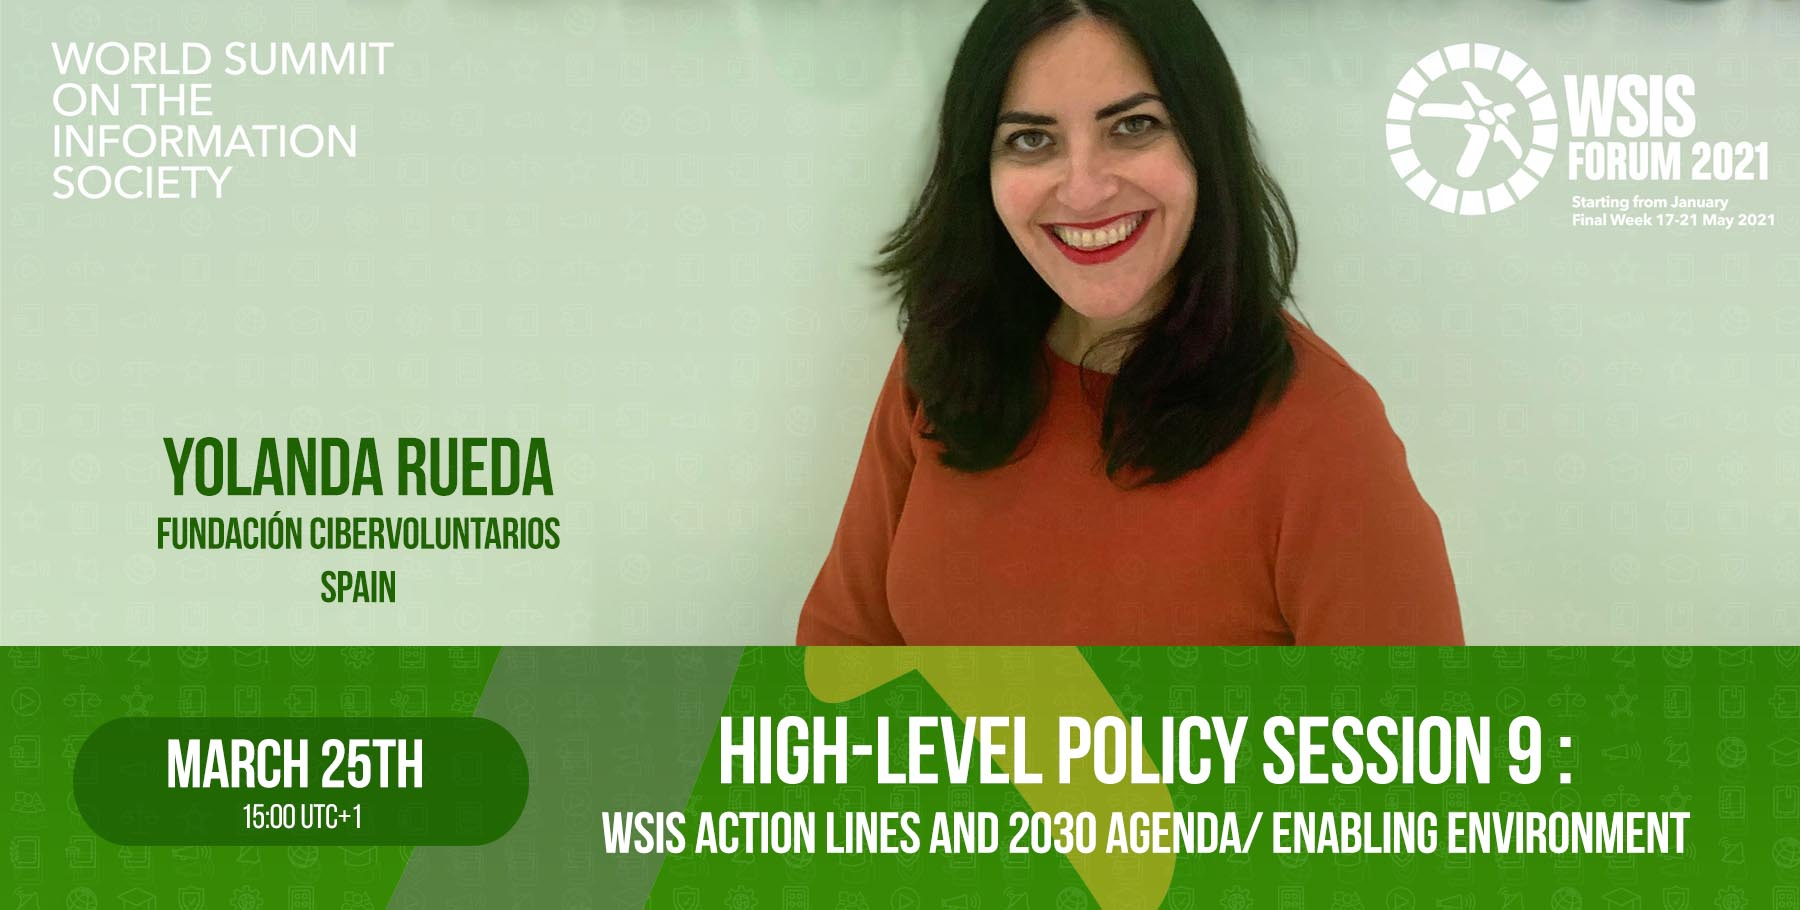 Cibervoluntarios in the High-Level Policy Session 9: WSIS Action Lines and 2030 Agenda